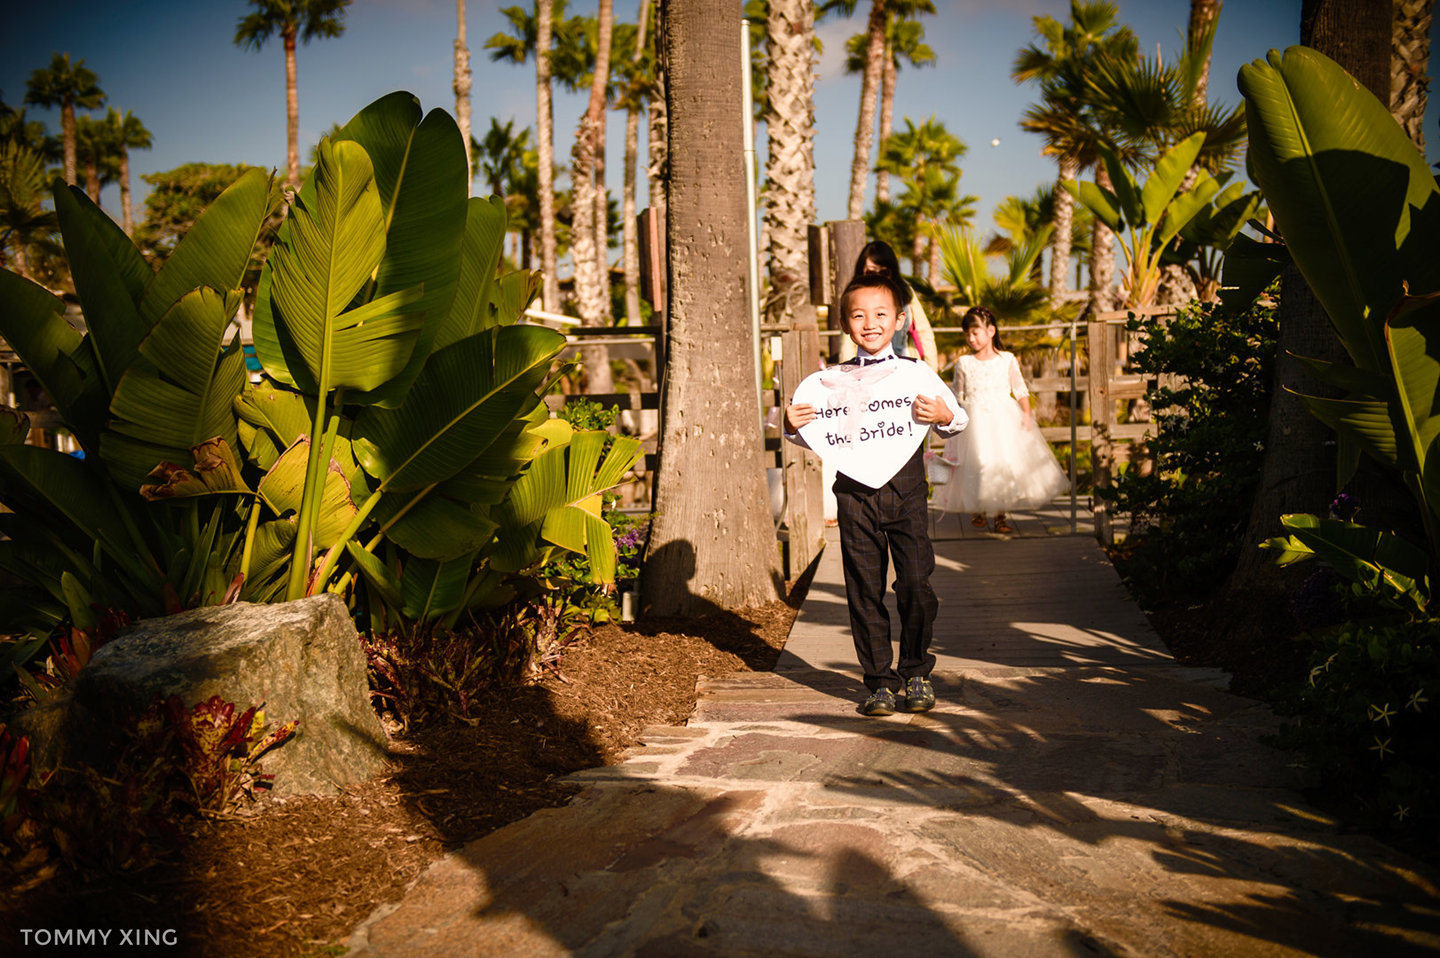 Paradise Point Resort Wedding Xiaolu & Bin San Diego 圣地亚哥婚礼摄影跟拍 Tommy Xing Photography 洛杉矶婚礼婚纱照摄影师 098.jpg